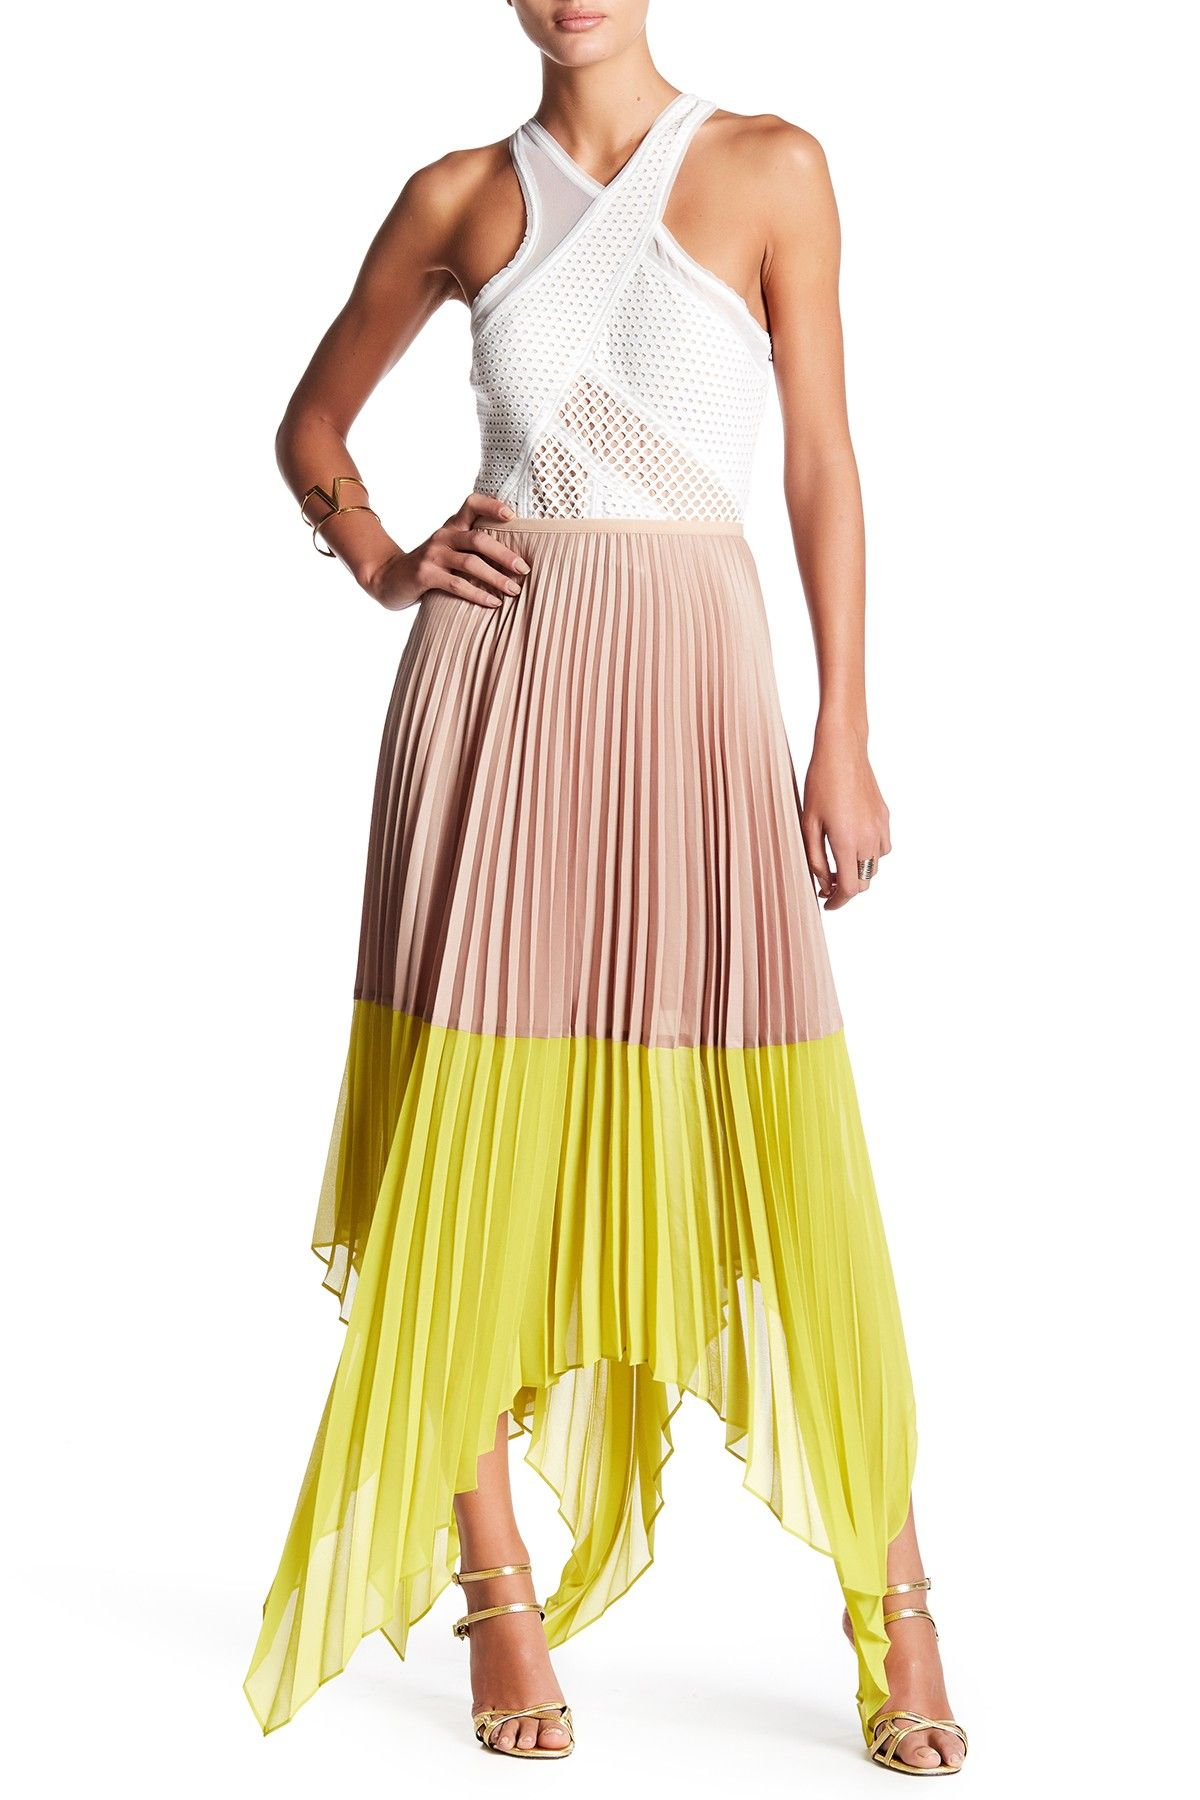 2 piece crop top wedding dress  Micro Wet Satin Weave Pleated Skirt  Satin Free shipping and Products